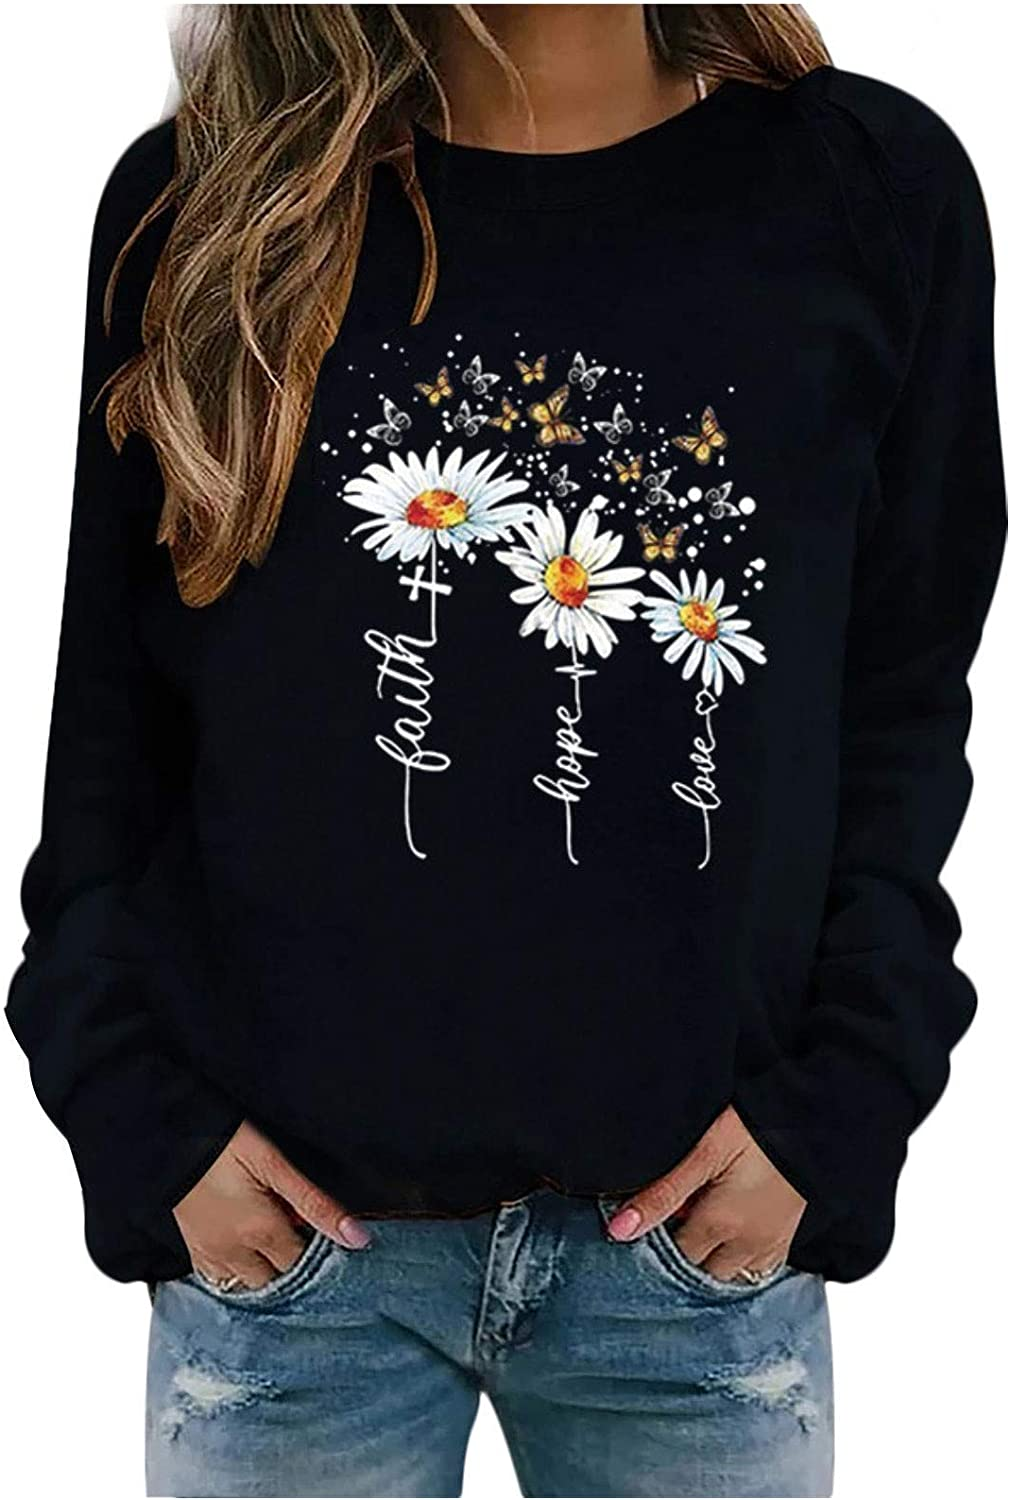 Tupenty Womens Long Sleeve Tops Plus Size Floral Butterfly Graphic Printed Casual Loose Tunic Shirts Blouse Sweatshirt